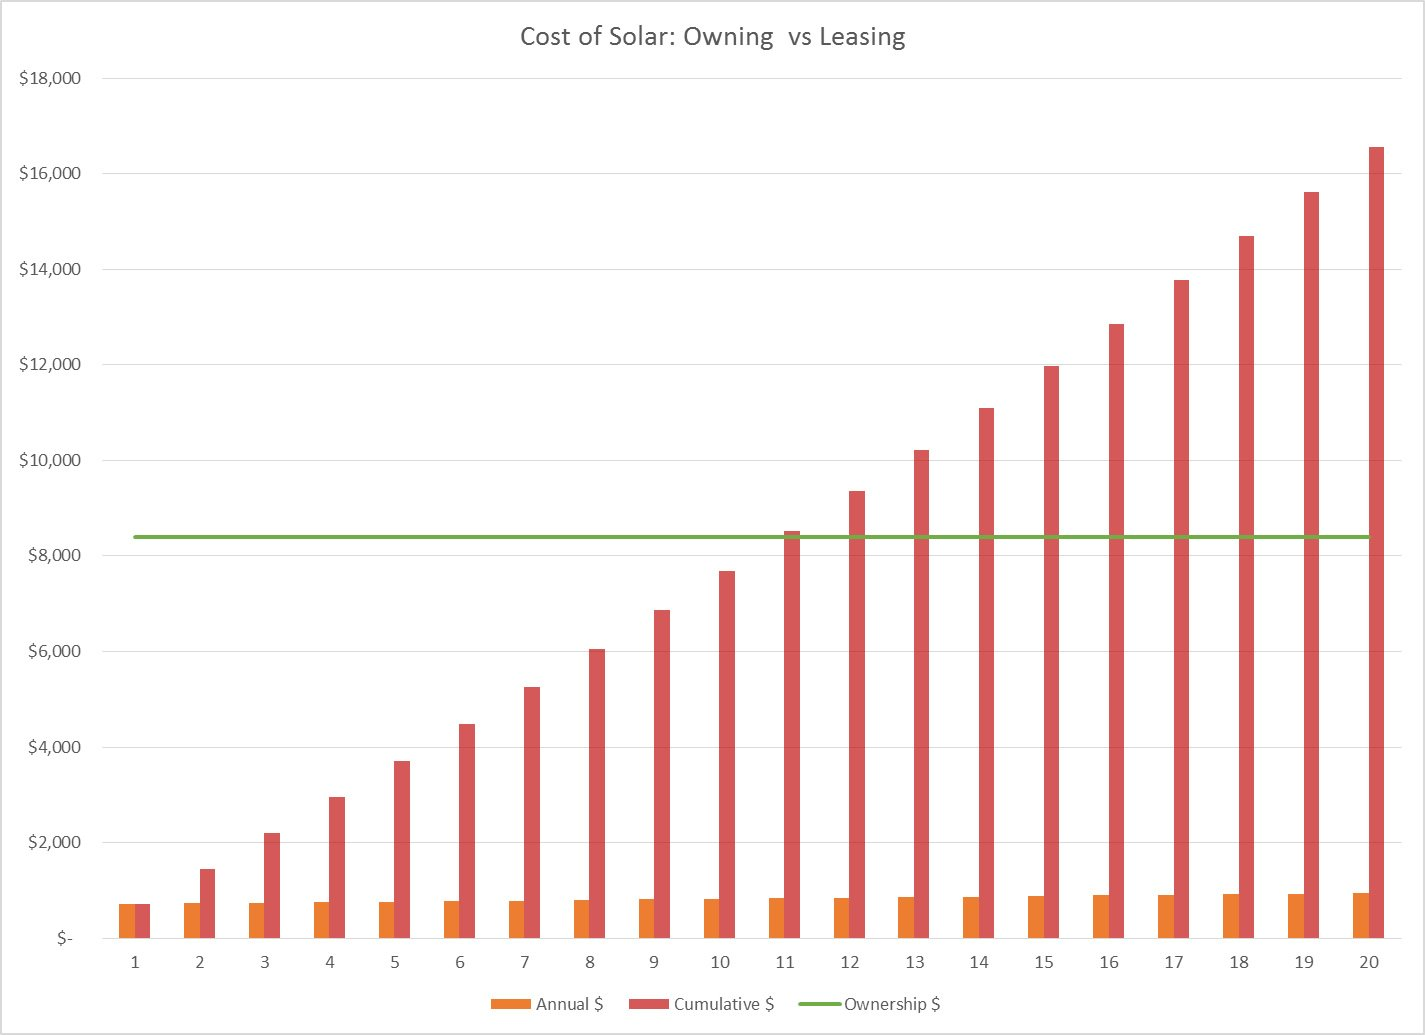 cost of solar: owning vs leasing - buy or lease solar panels